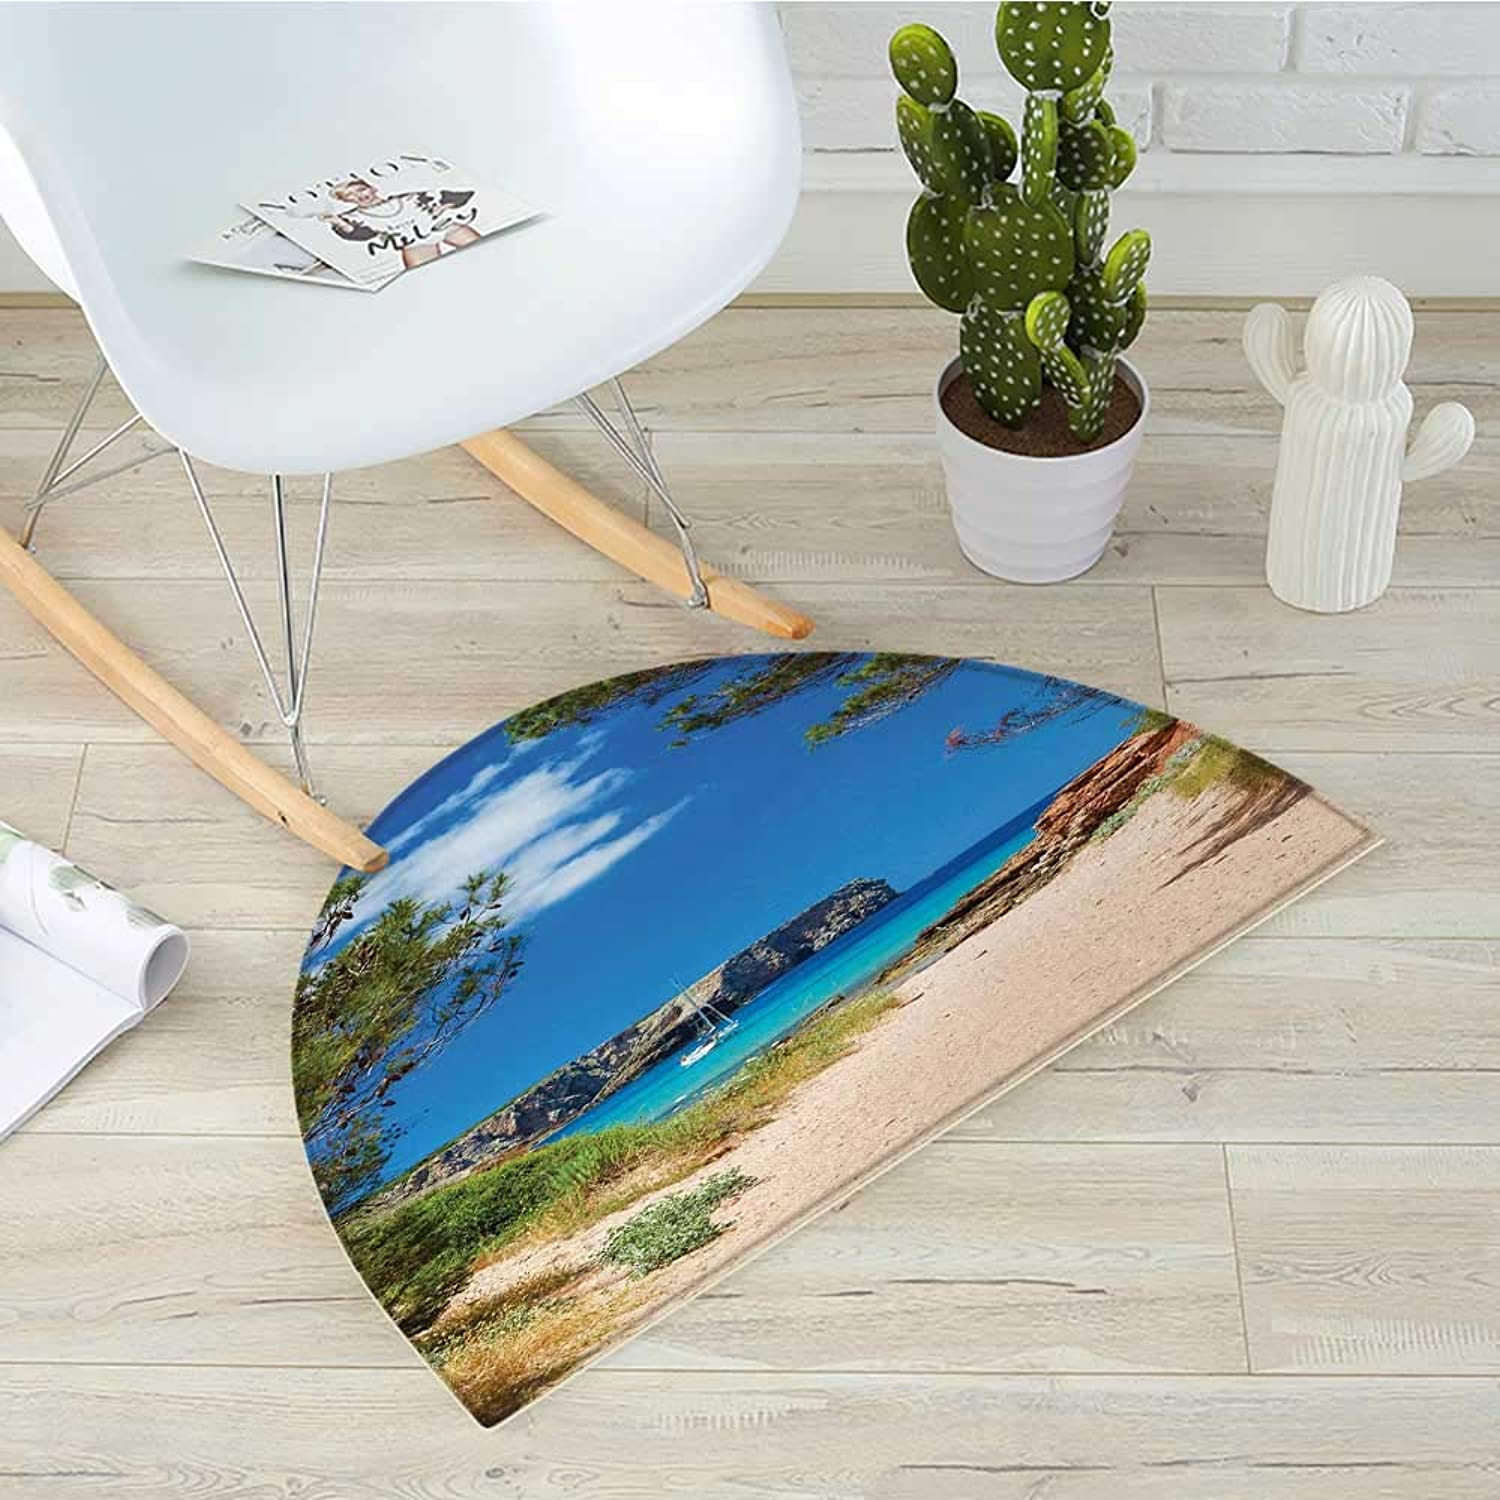 Beach Semicircular CushionView on Cala Algaiarens from Sand Pathway Cliff in Water Menorca Island Europe Theme Entry Door Mat H 35.4  xD 53.1  Multicolor